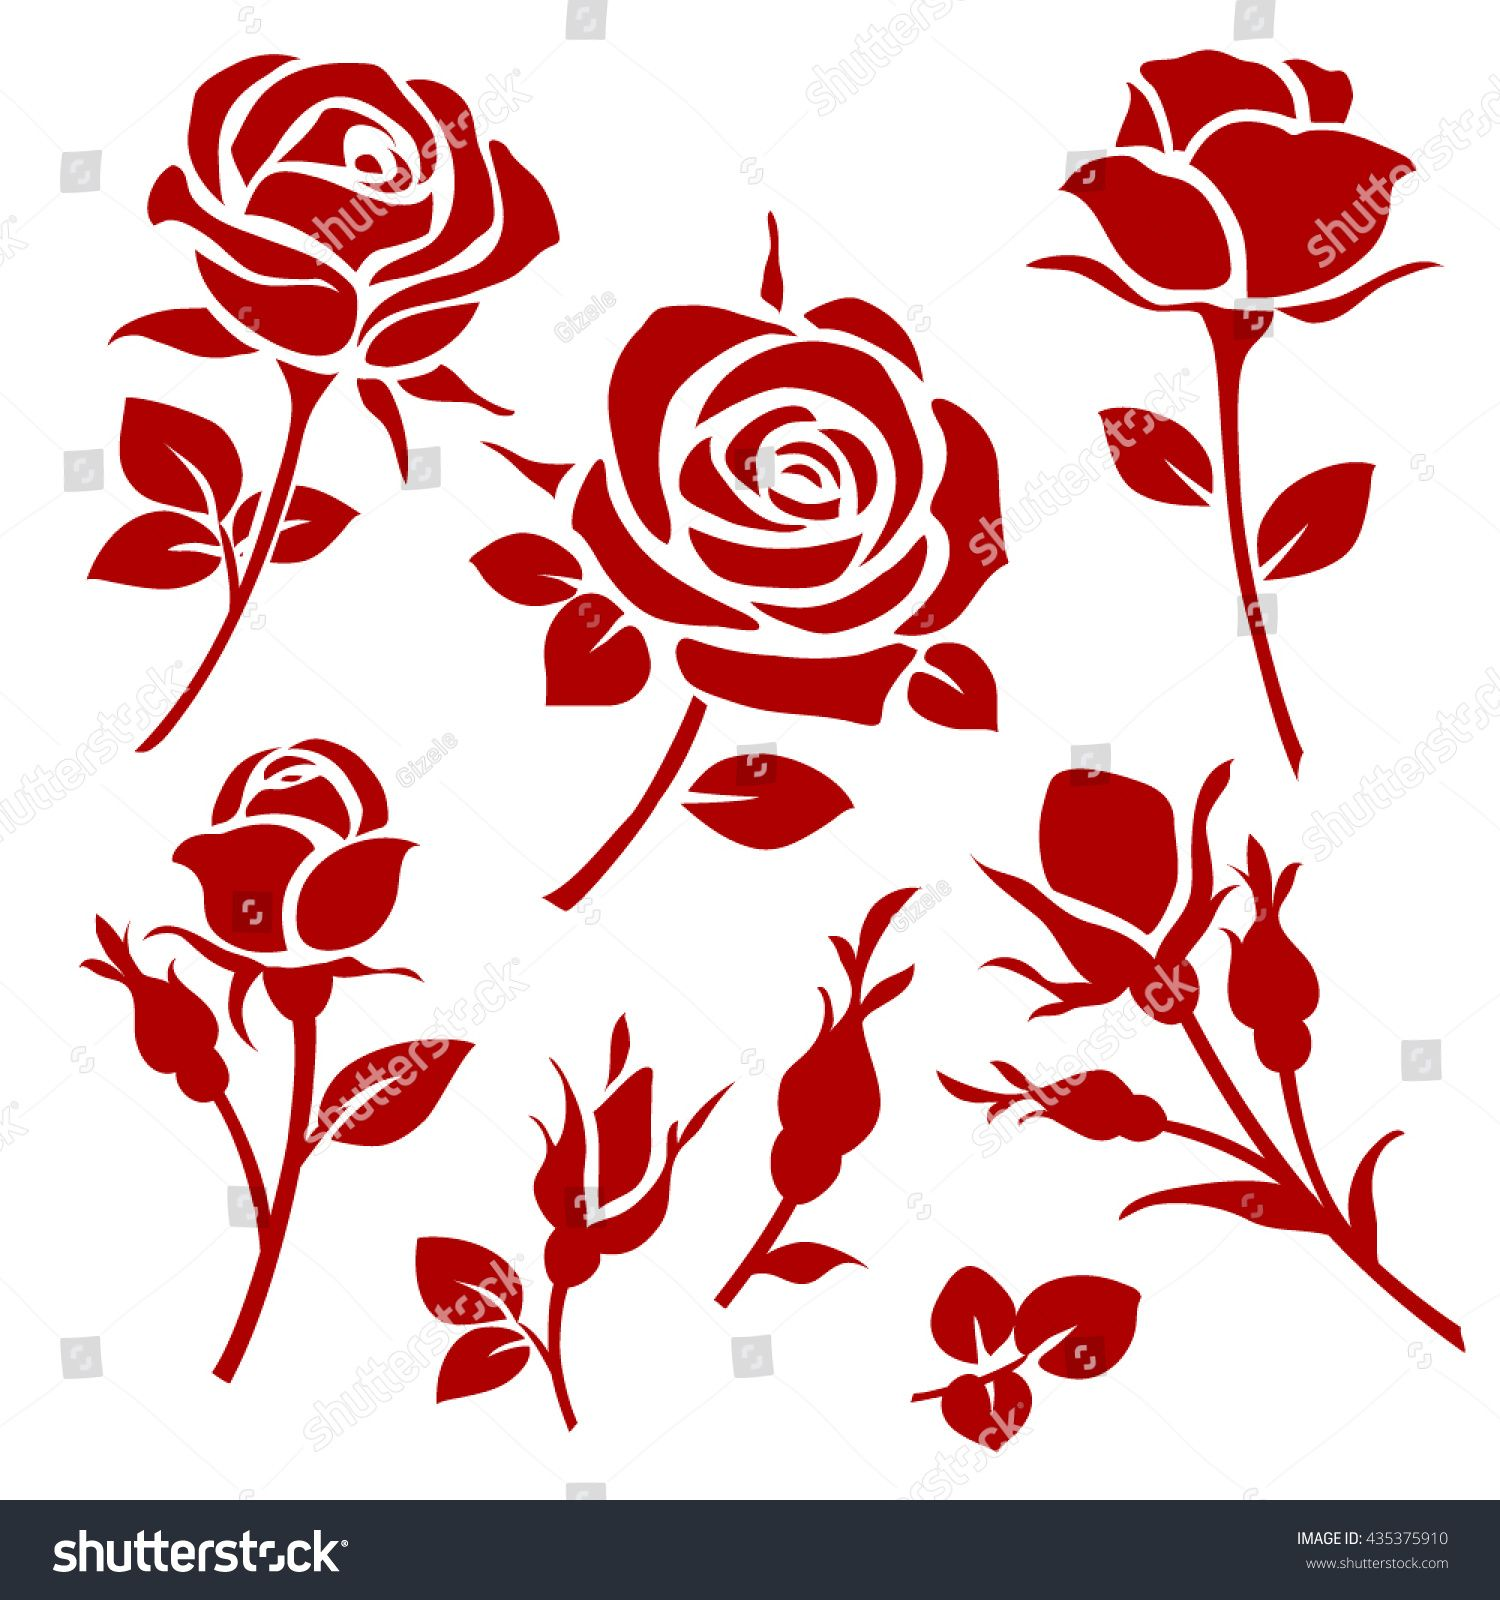 Vector Rose Icon Spring Decorative Rose And Bud Silhouettes Sponsored Sponsored Icon Rose Vector Spring Rose Icon Rose Stencil Rose Illustration